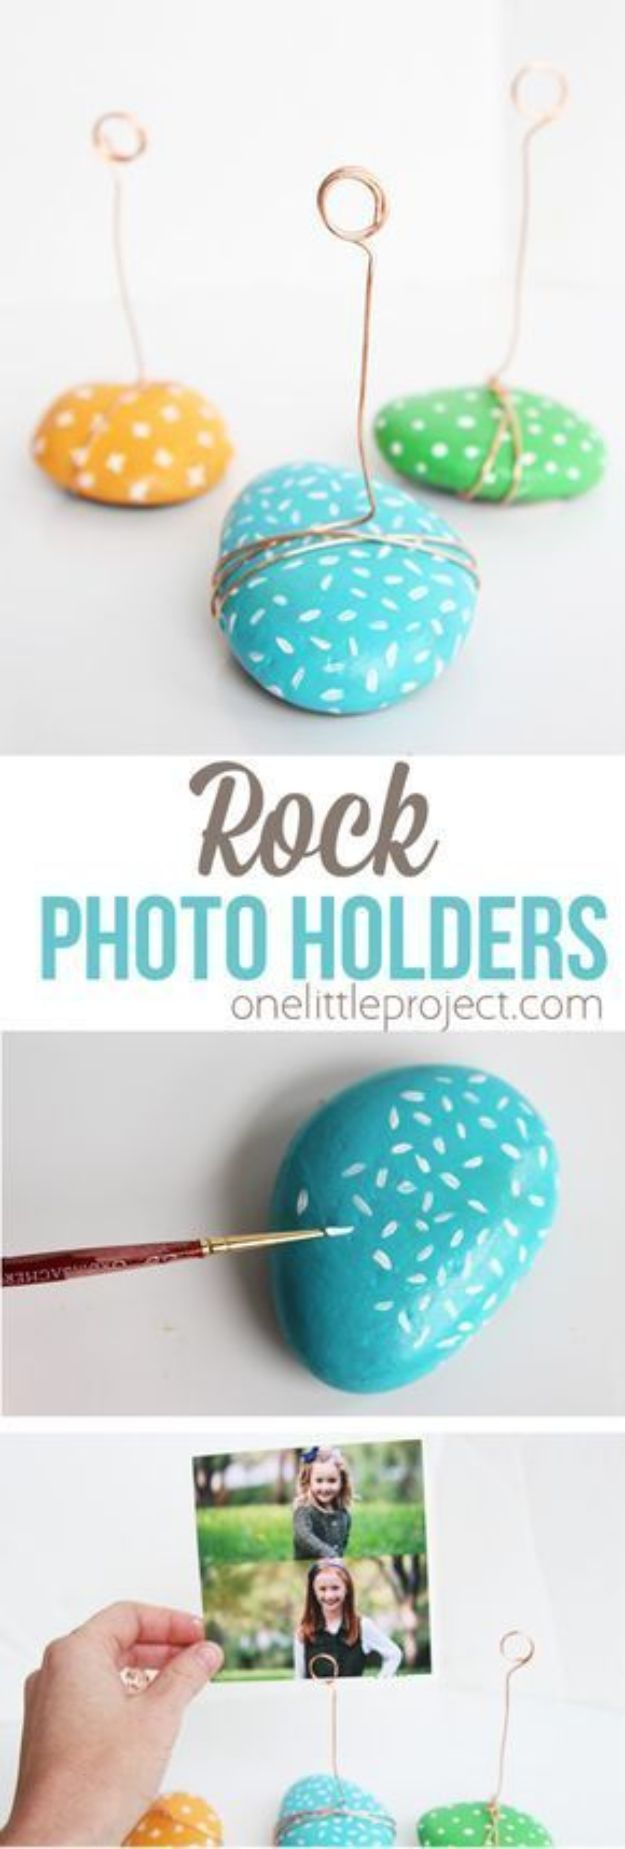 Most Profitable Crafts to Sell  DIY Crafts To Make and Sell  DIY Painted Rock Photo Holders  DIY Gifts for Mom and Dad  Cheap DIY Ideas to Sell for Money  Teen Crafts You...